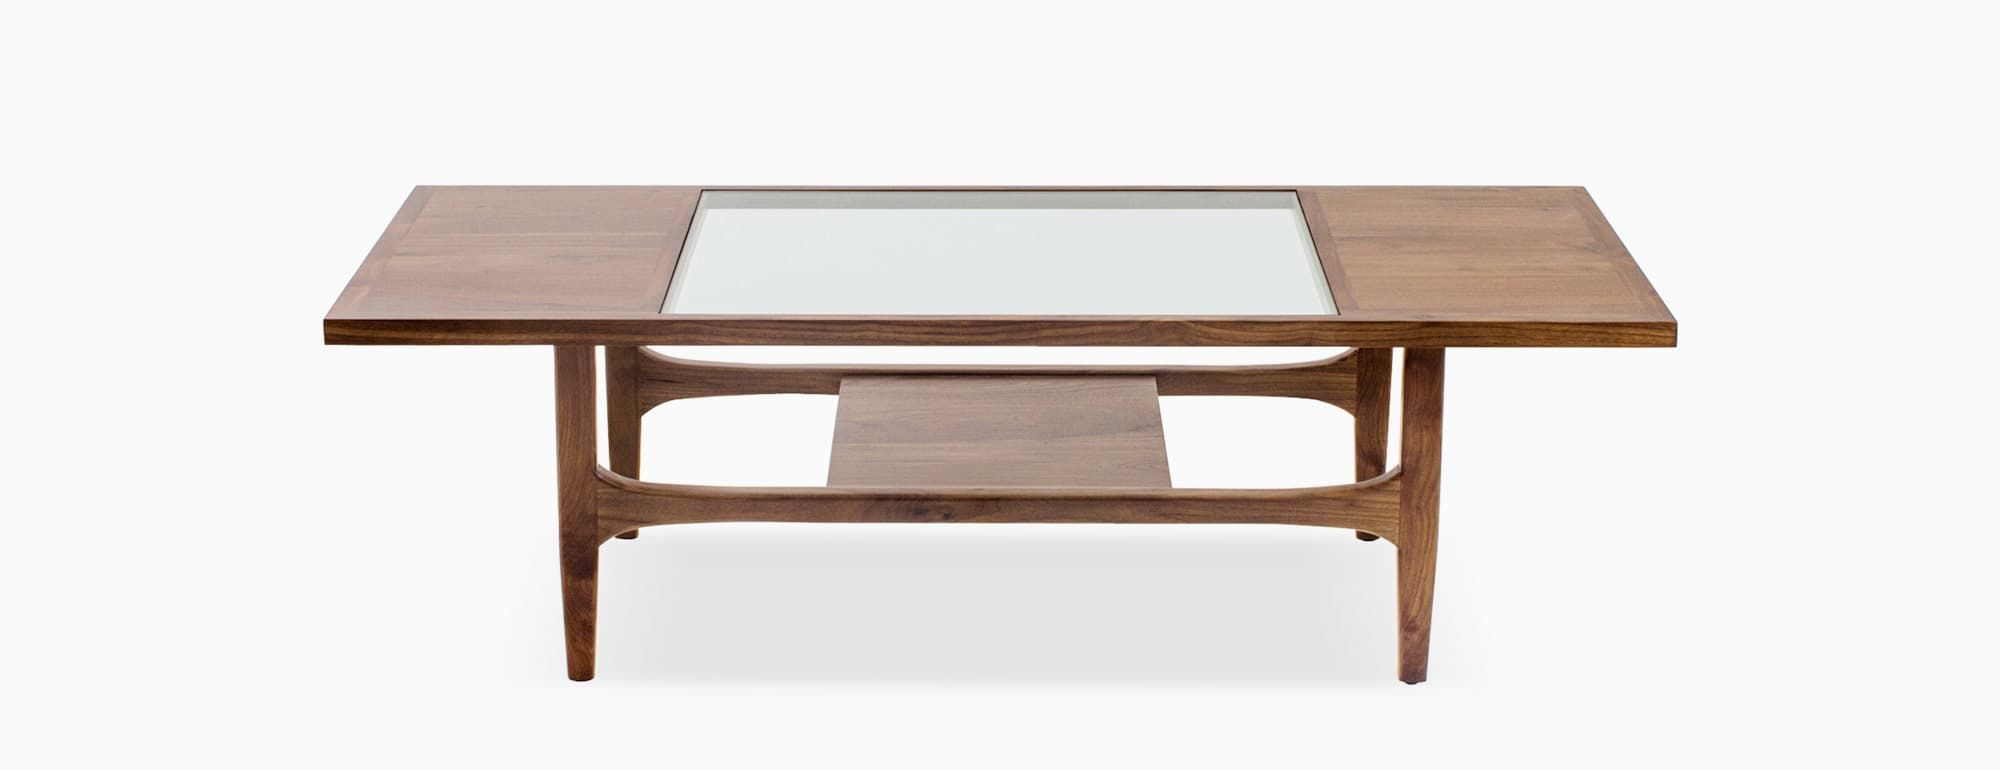 Tate Coffee Table Coffee Table Made Coffee Table Table